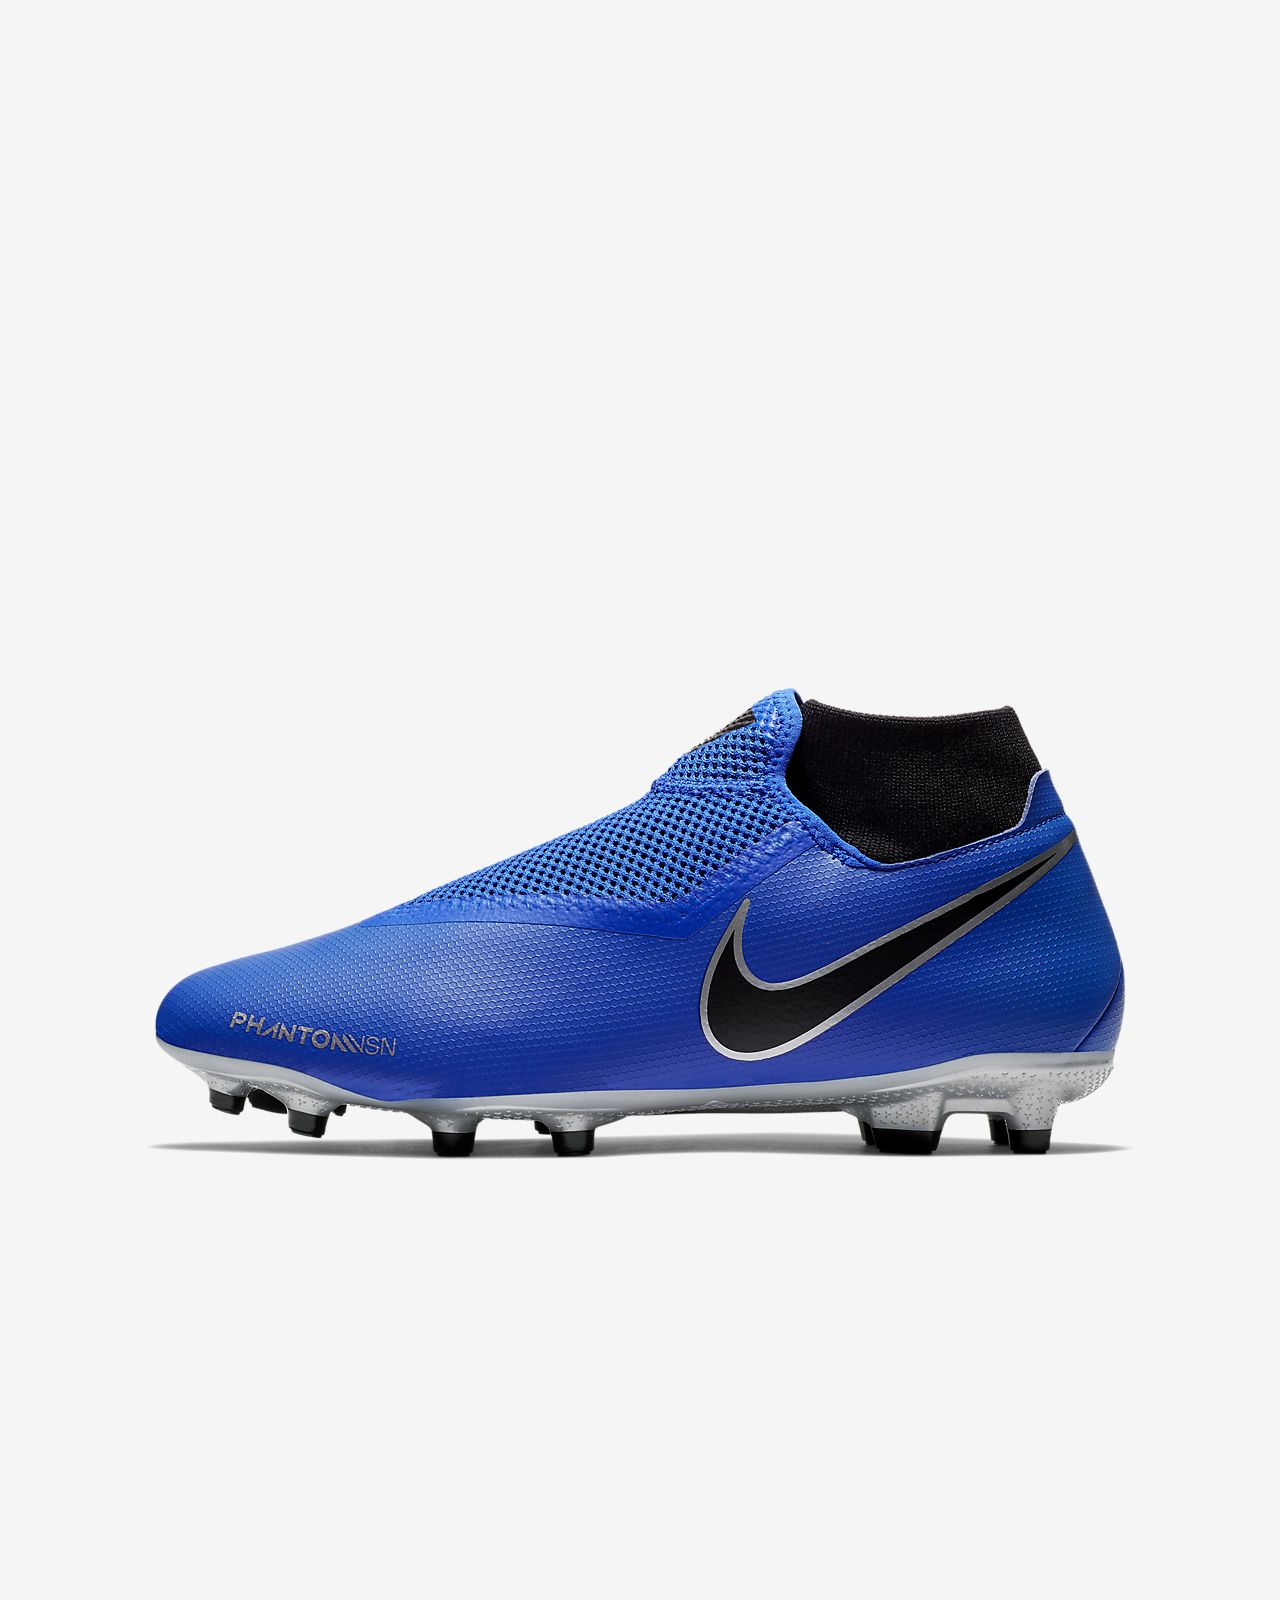 1226e036a Multi-Ground Football Boot. Nike Phantom Vision Academy Dynamic Fit MG